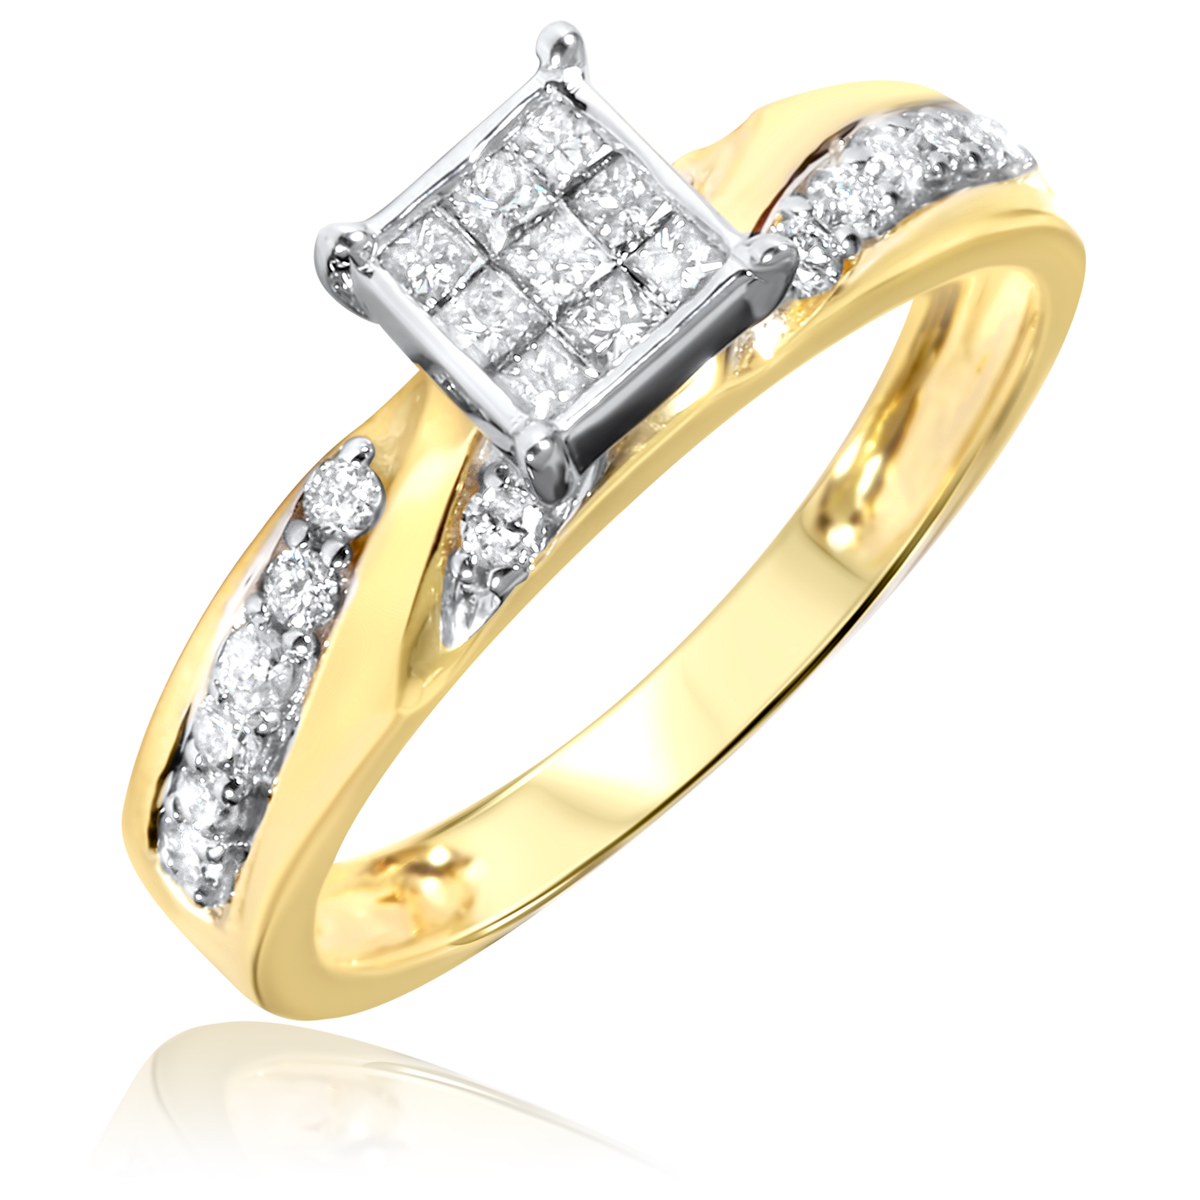 His Her Mens Woman Diamonds Wedding Ring Bands Trio Bridal Set 10k Yellow Gold